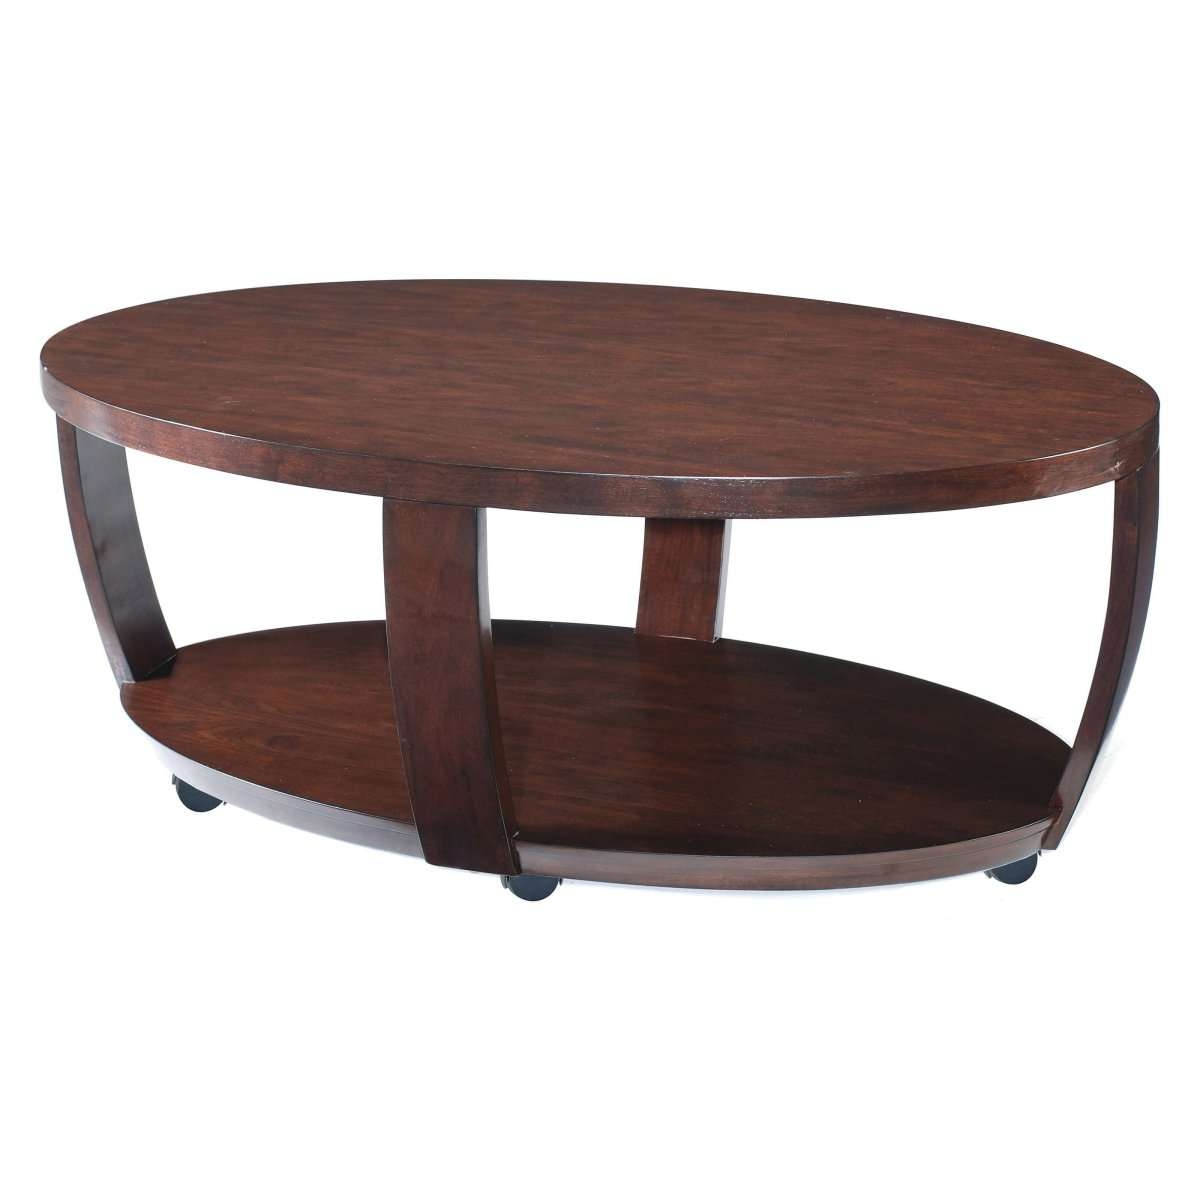 Coffee Tables : Oval Wood Coffee Table Luxury Marvelous Rustic Inside Widely Used Coffee Tables With Oval Shape (View 10 of 20)